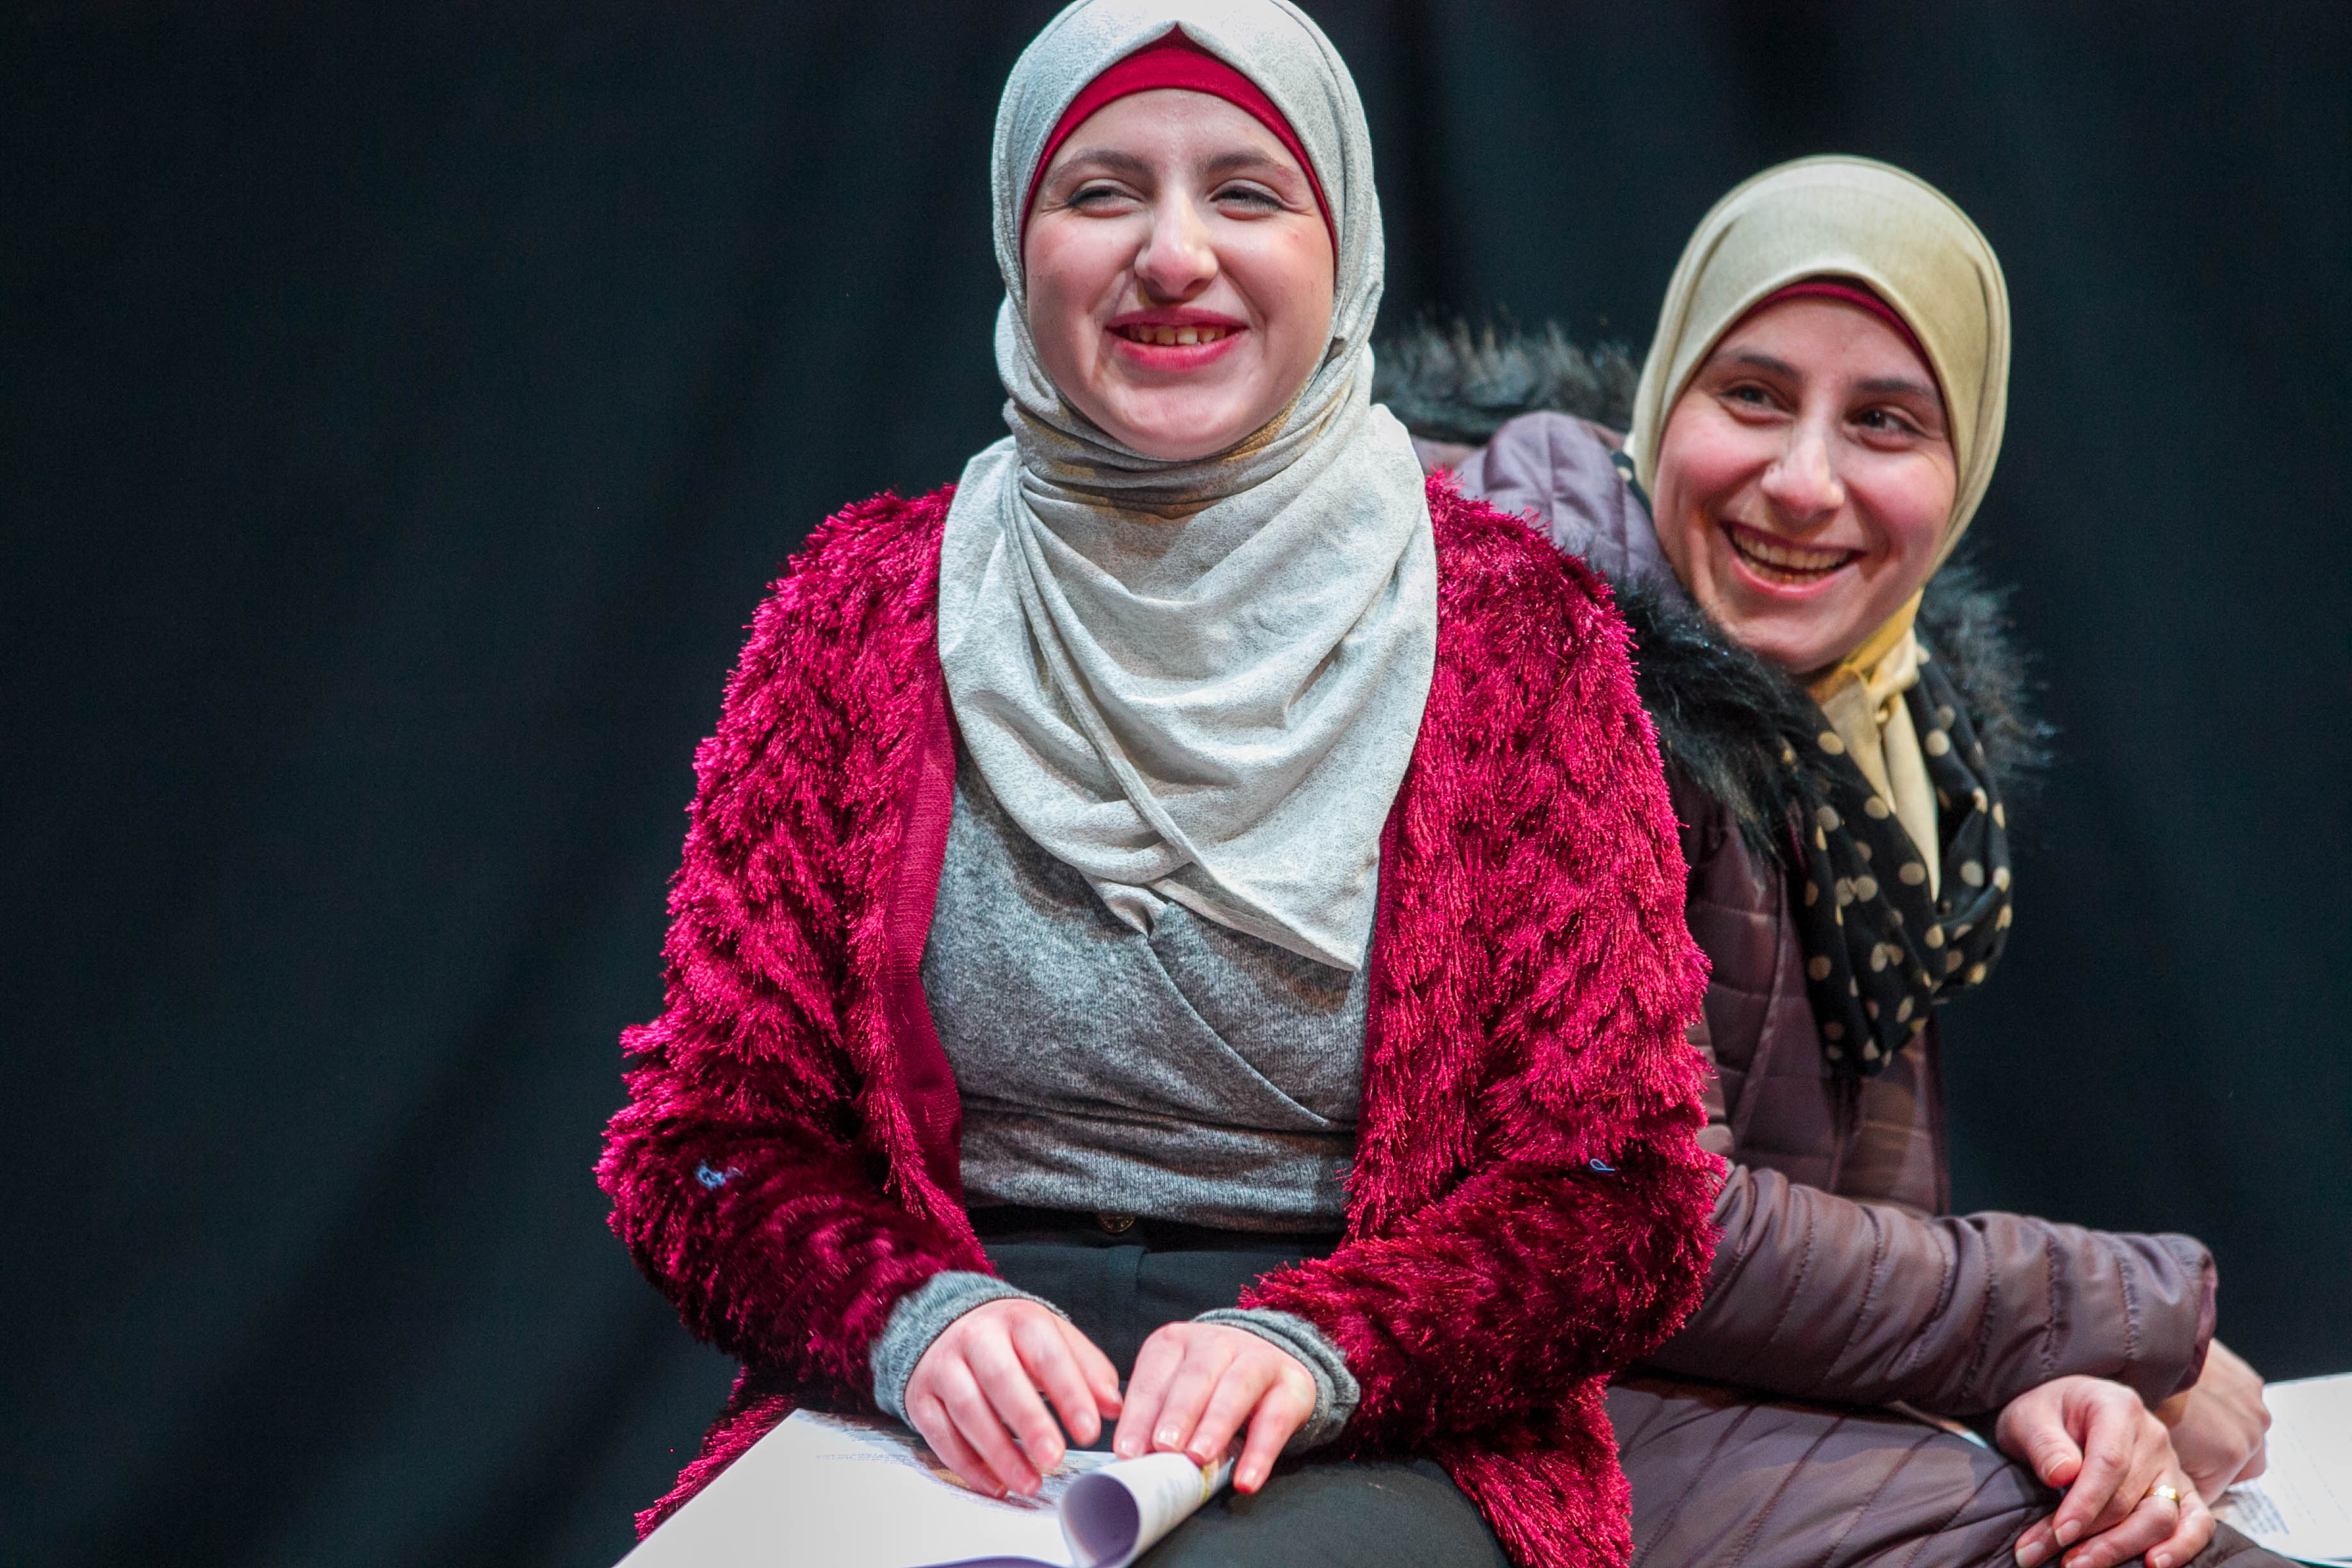 A brand new, haunting and uplifting adaptation of Euripides' great anti-war tragedy, written and acted by a cast of Syrian refugees living in Glasgow.